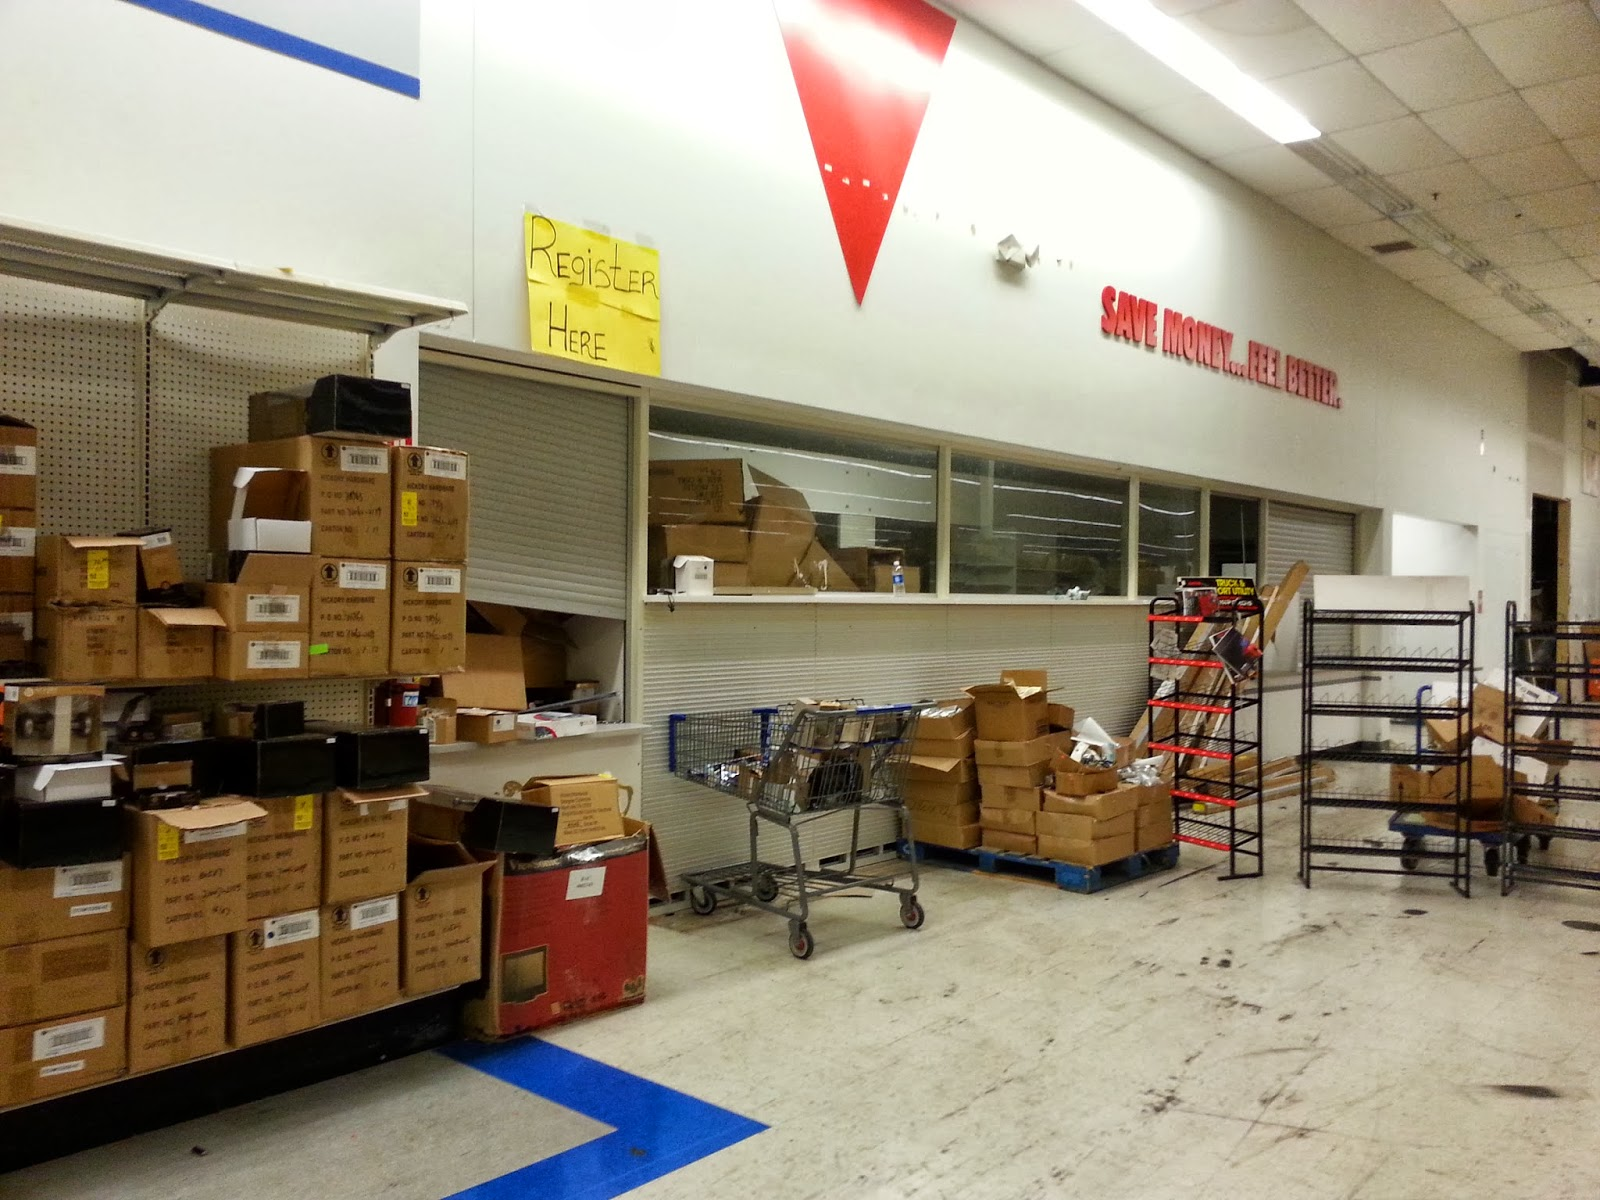 Dead and dying retail former elyria ohio super kmart for Kmart shirts for employees